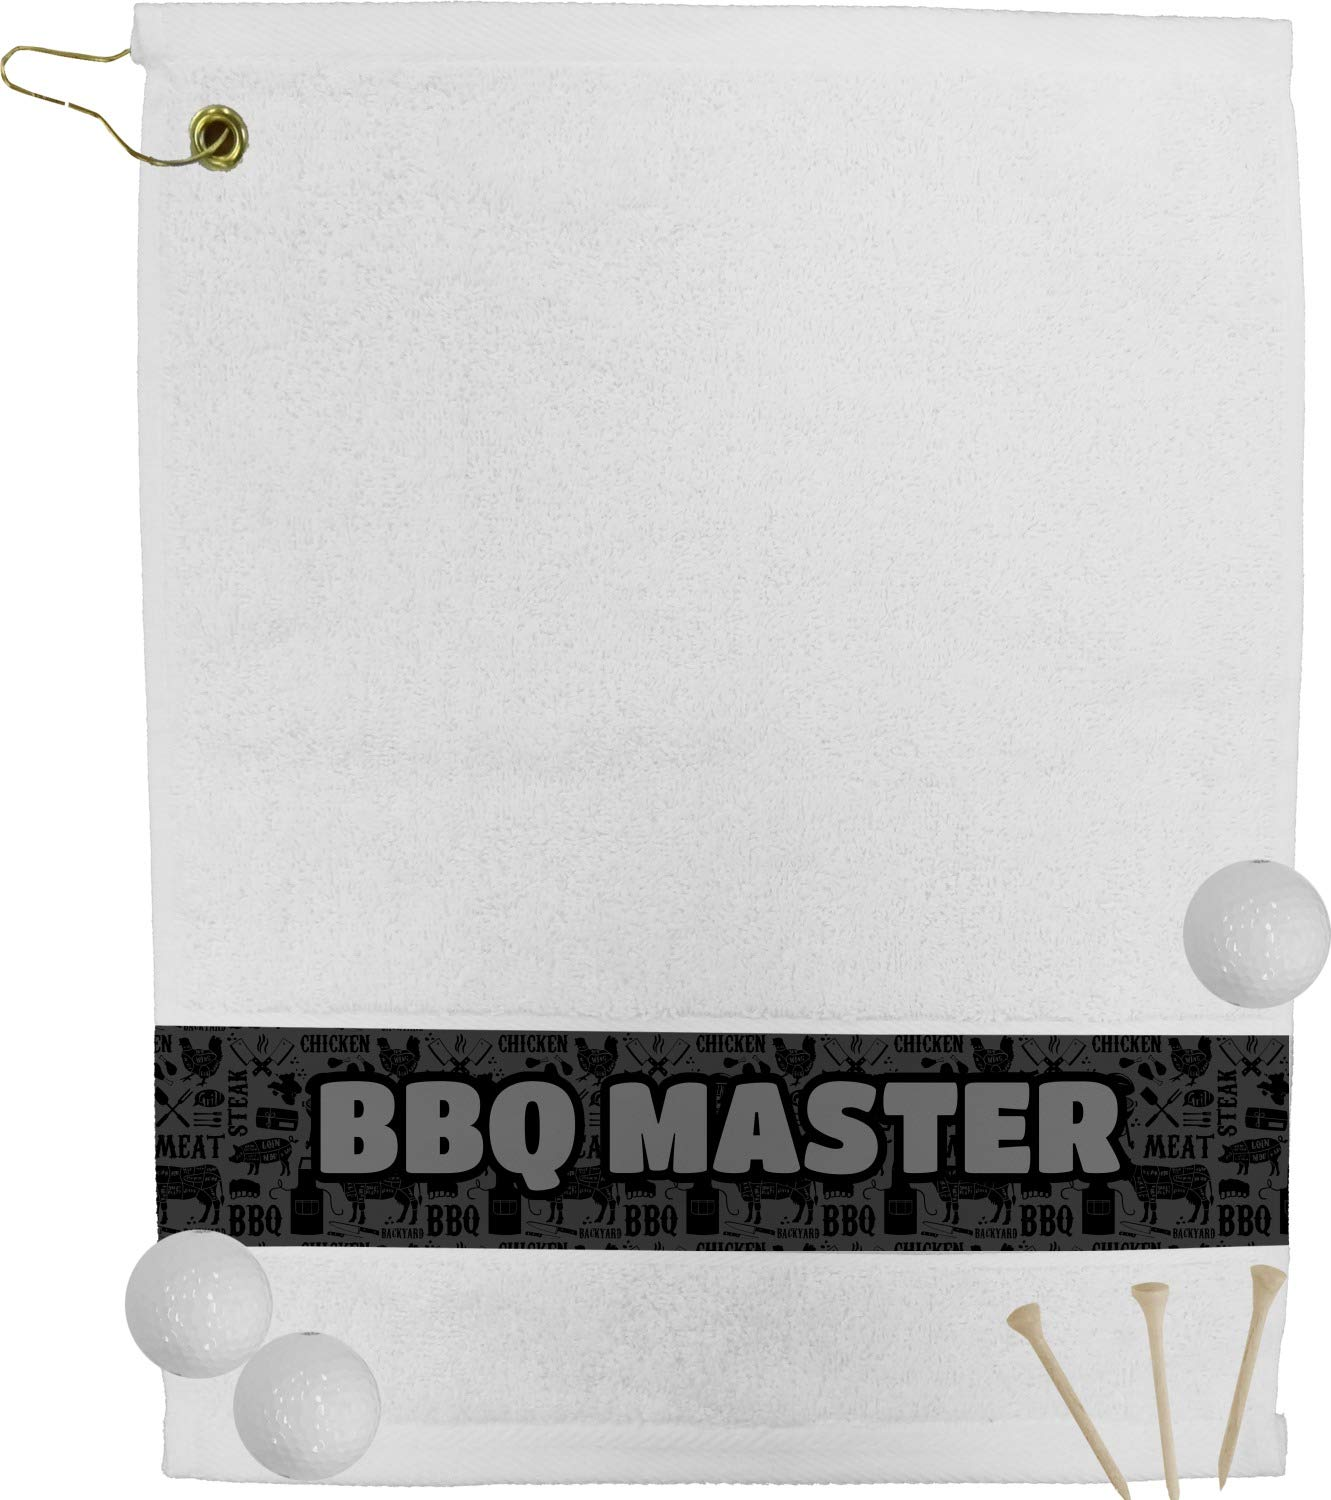 Barbequeゴルフタオル( Personalized Personalized ) B0764PKBYX B0764PKBYX, バッハマン:43d403fc --- lindauprogress.se